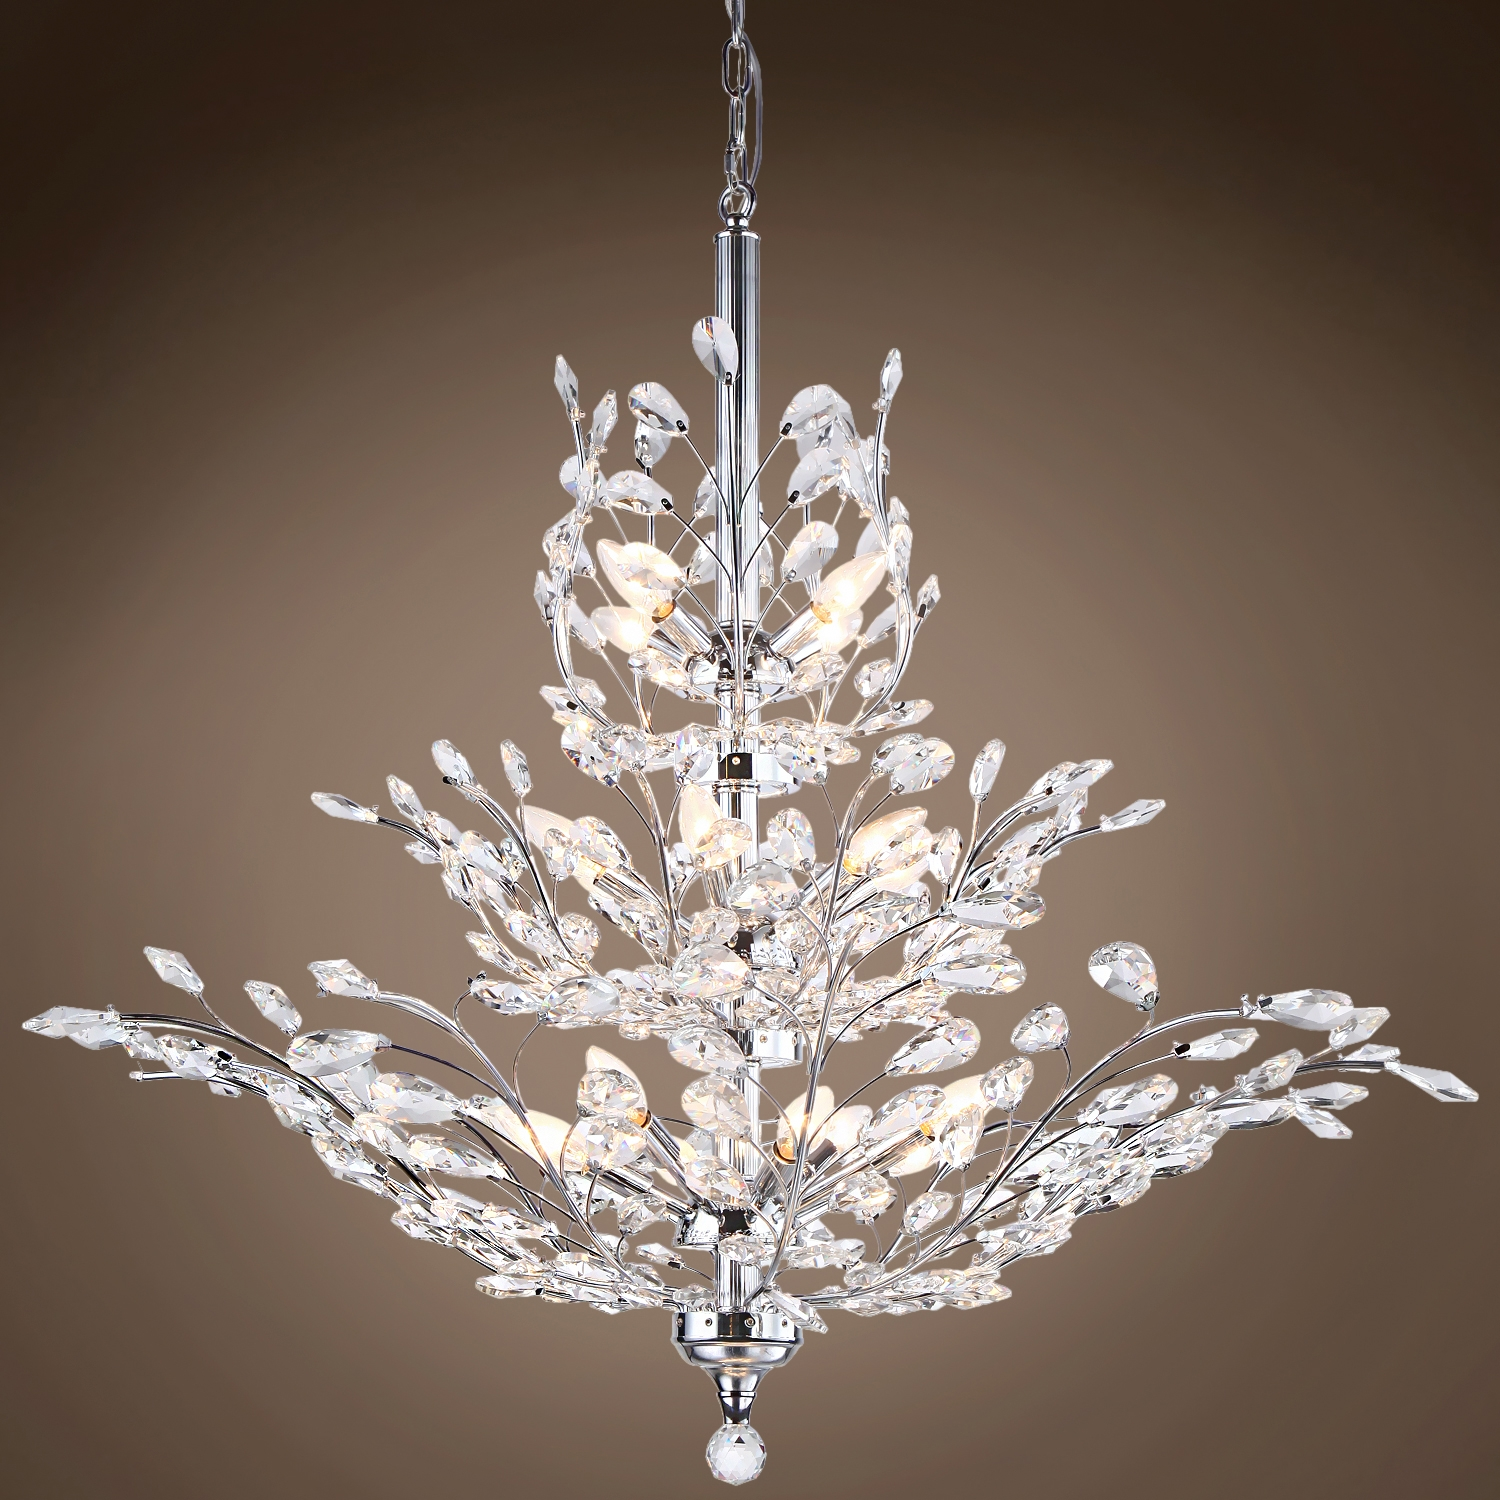 Joshua Marshal 700109 Branch Of Light 13 Light Chrome Chandelier Intended For Crystal Chrome Chandeliers (Photo 7 of 25)